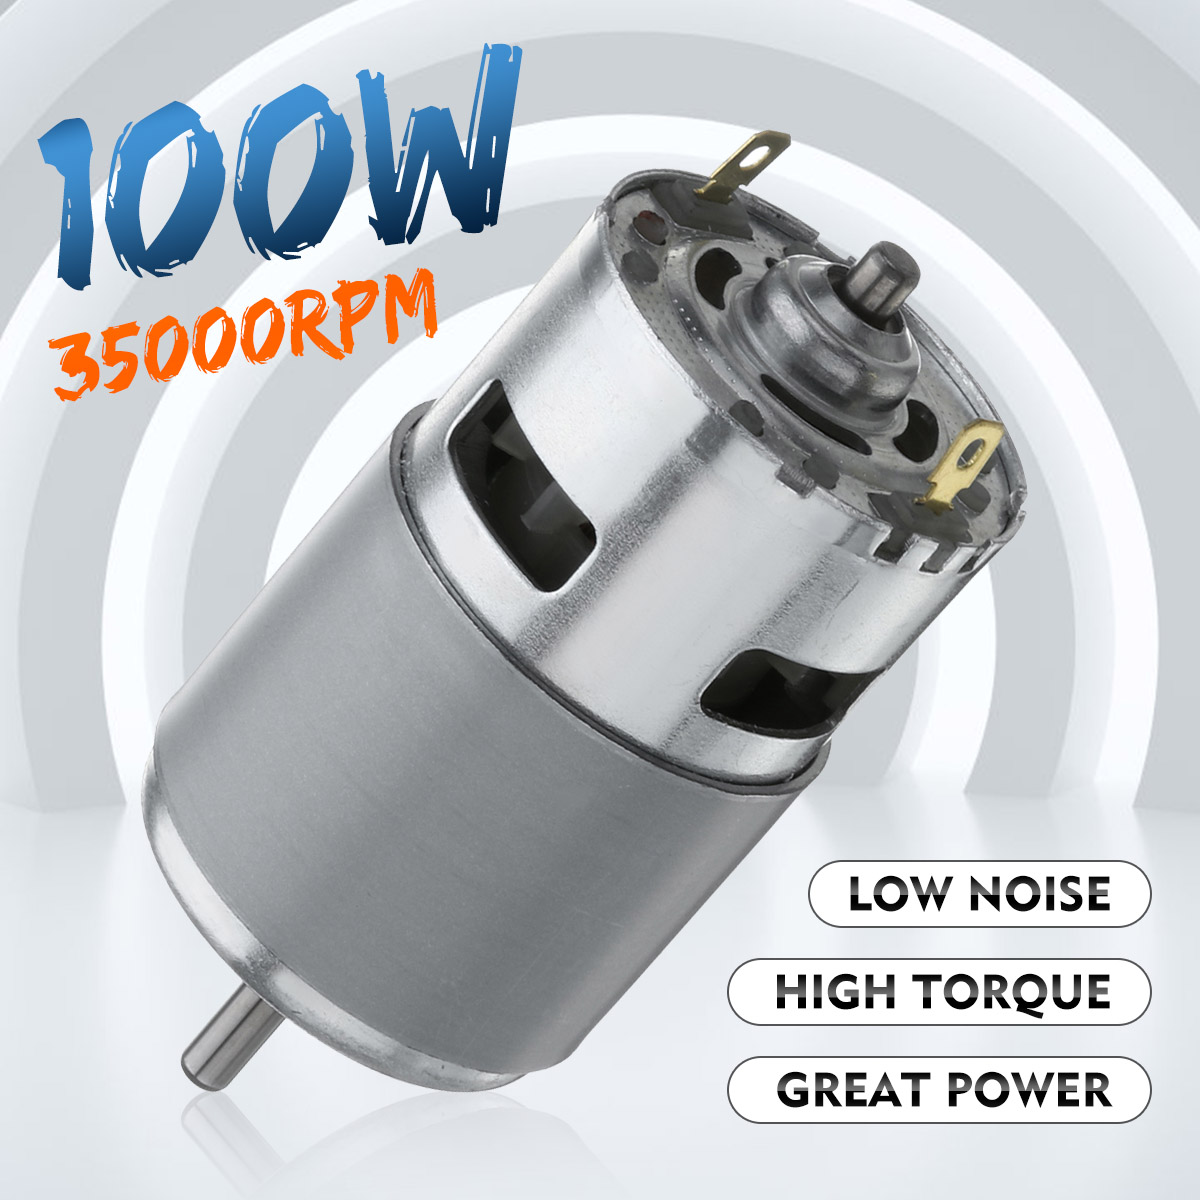 Max 35000 RPM 775 DC Motor DC 12V-24V Ball Bearing Large Torque High Power Low Noise Gears Motor Electronic Component Motor